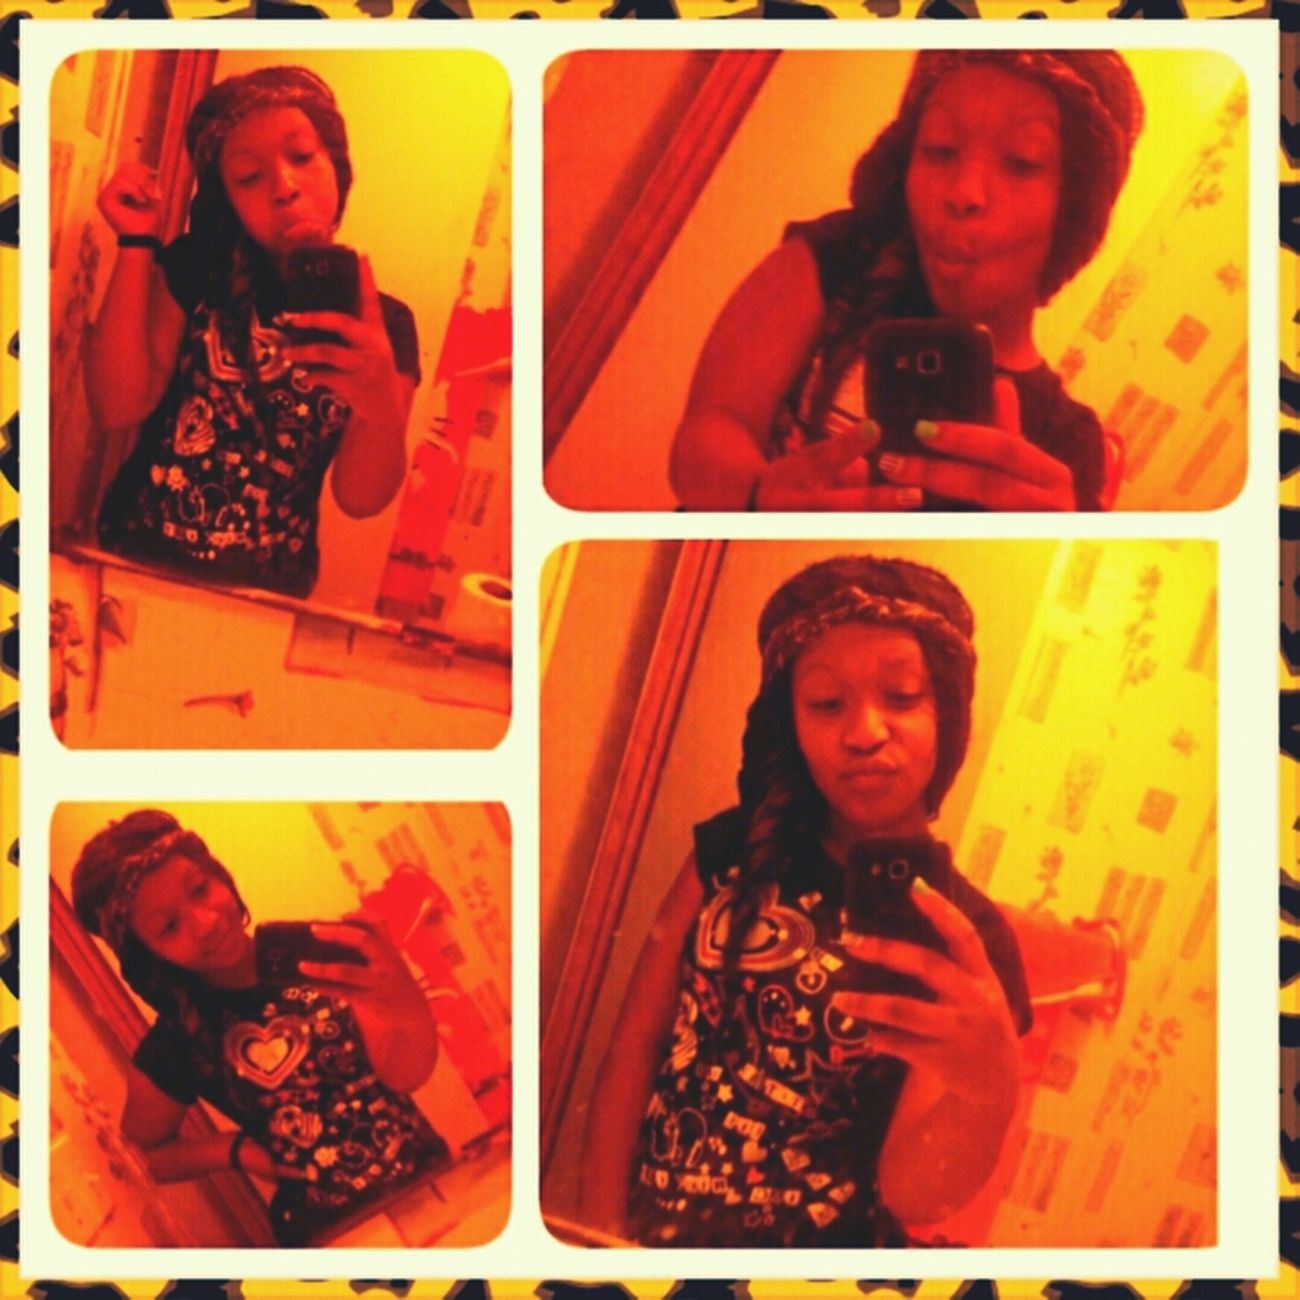 Goodmorning ...lol im finna go to sleep....